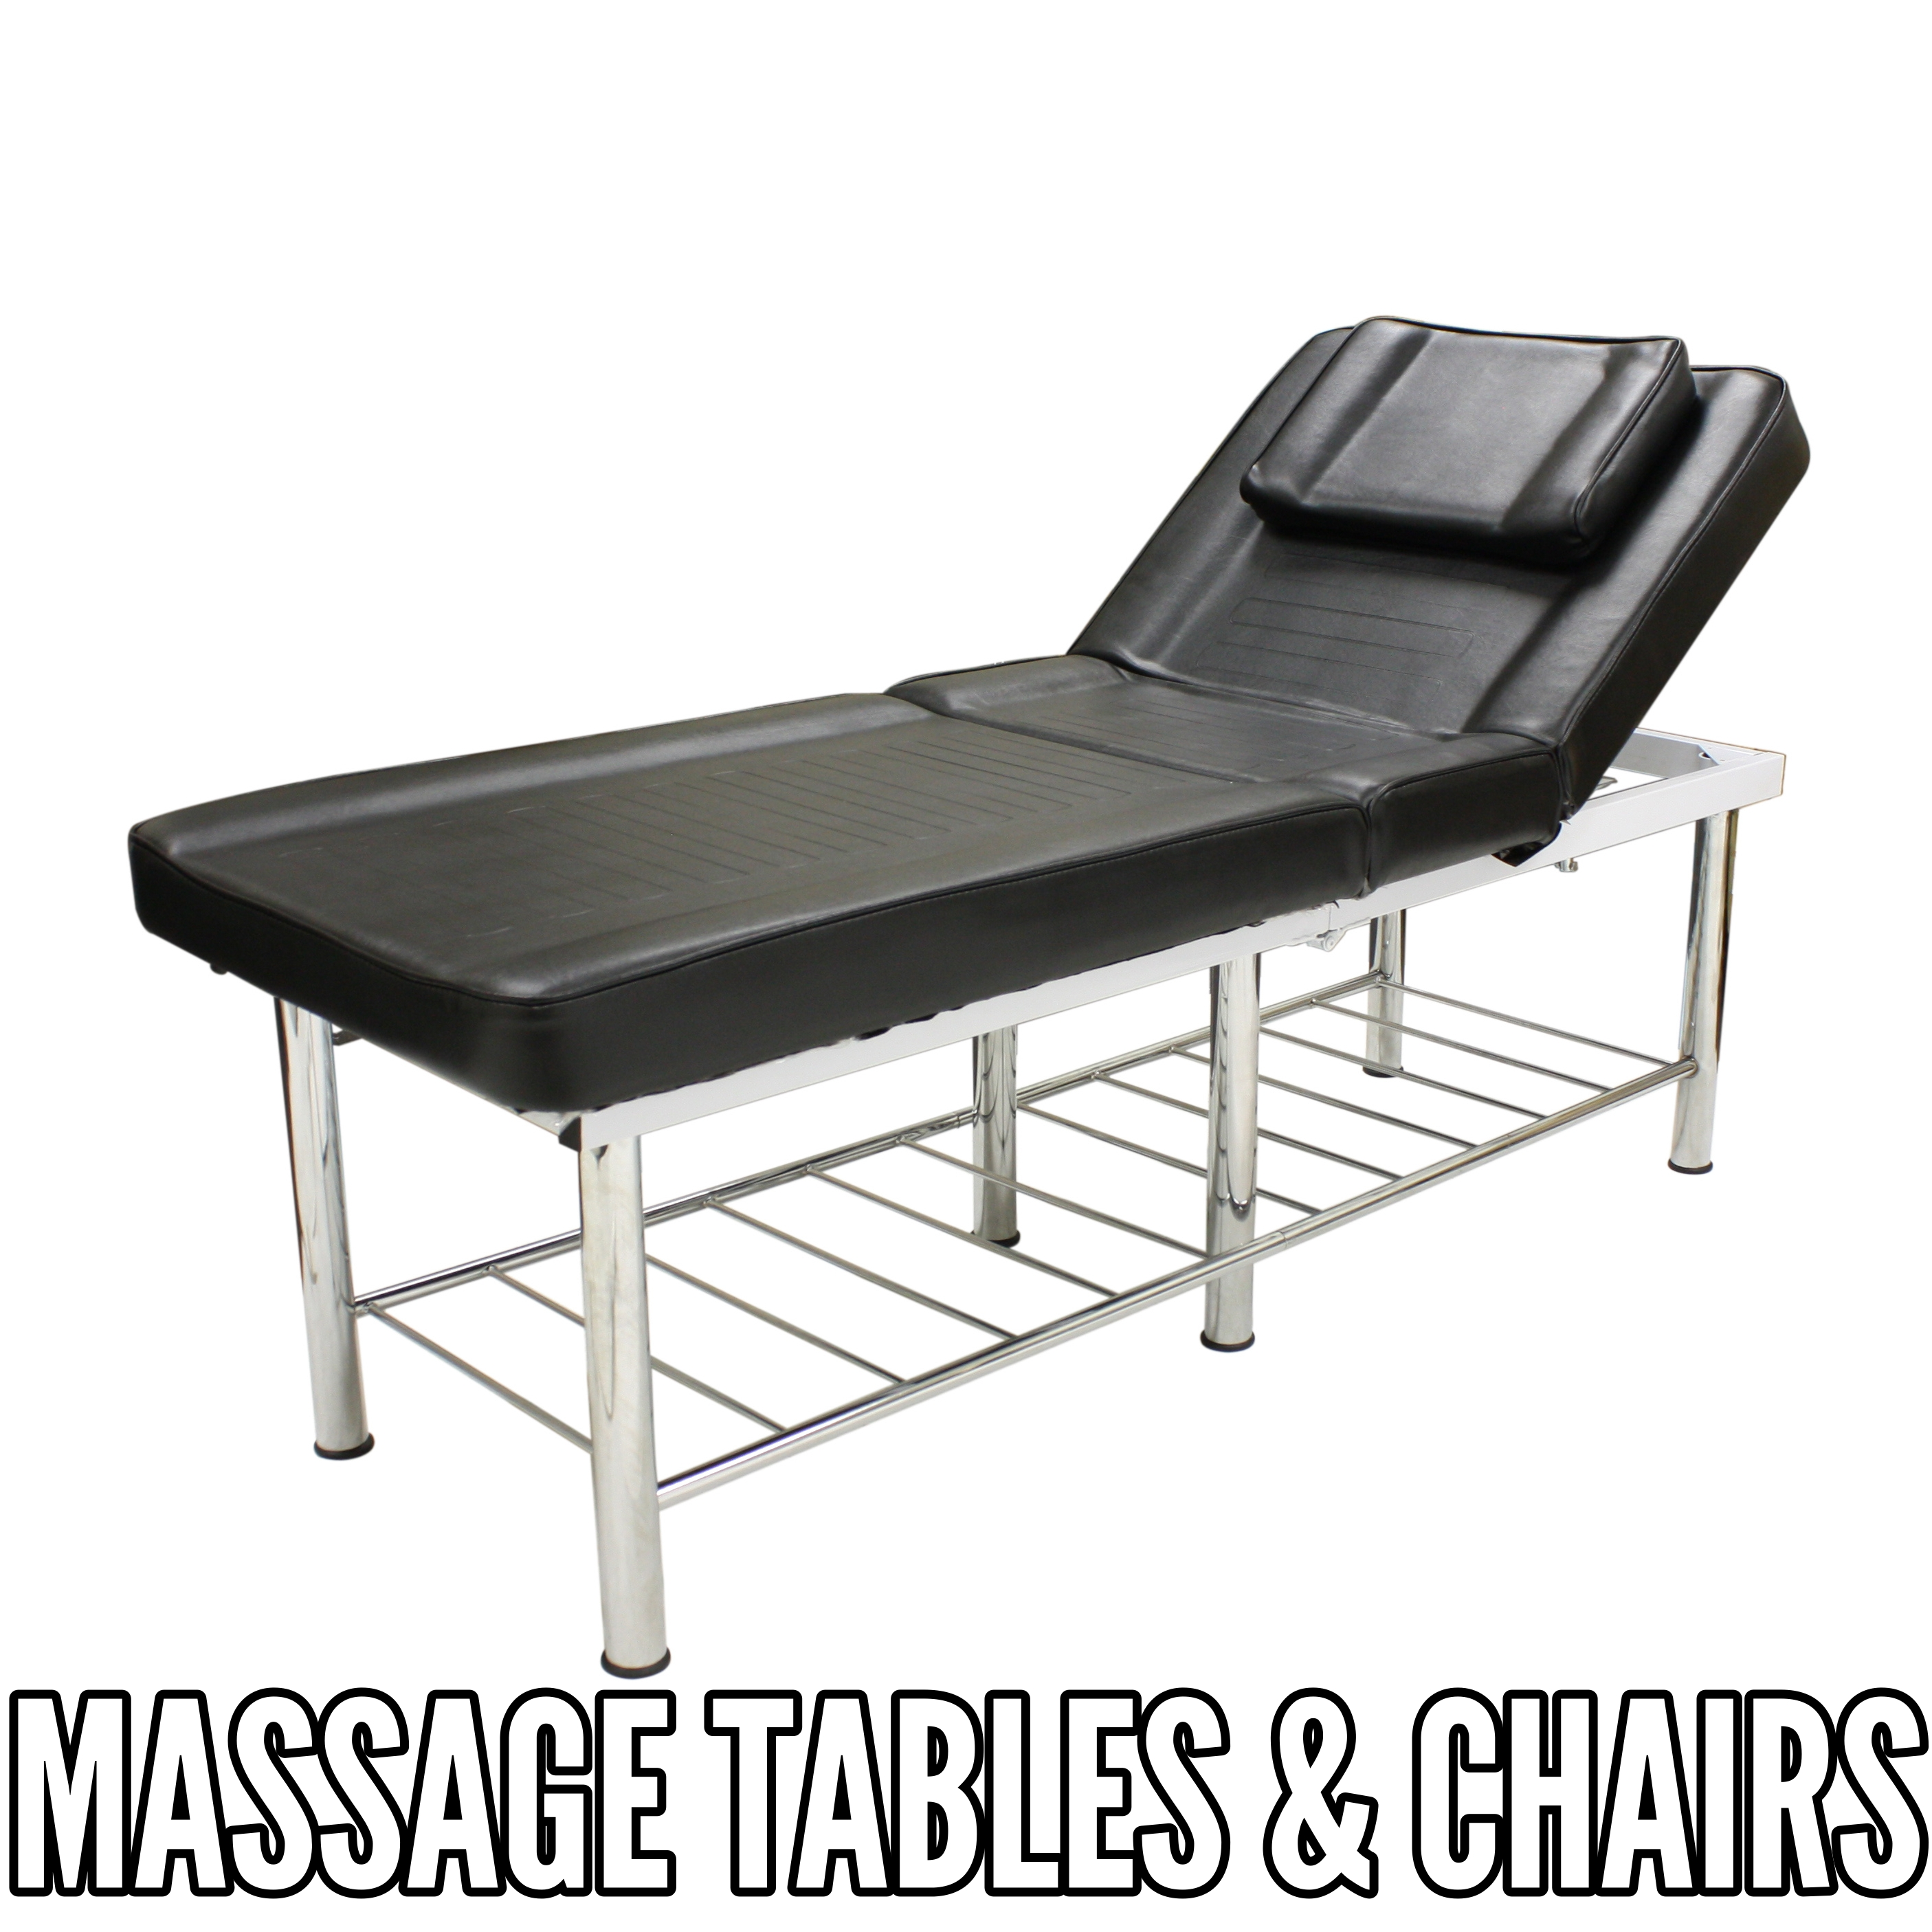 Professional Massage Tables And Chairs   Spa Equipment U0026 Furniture   CCI  Beauty